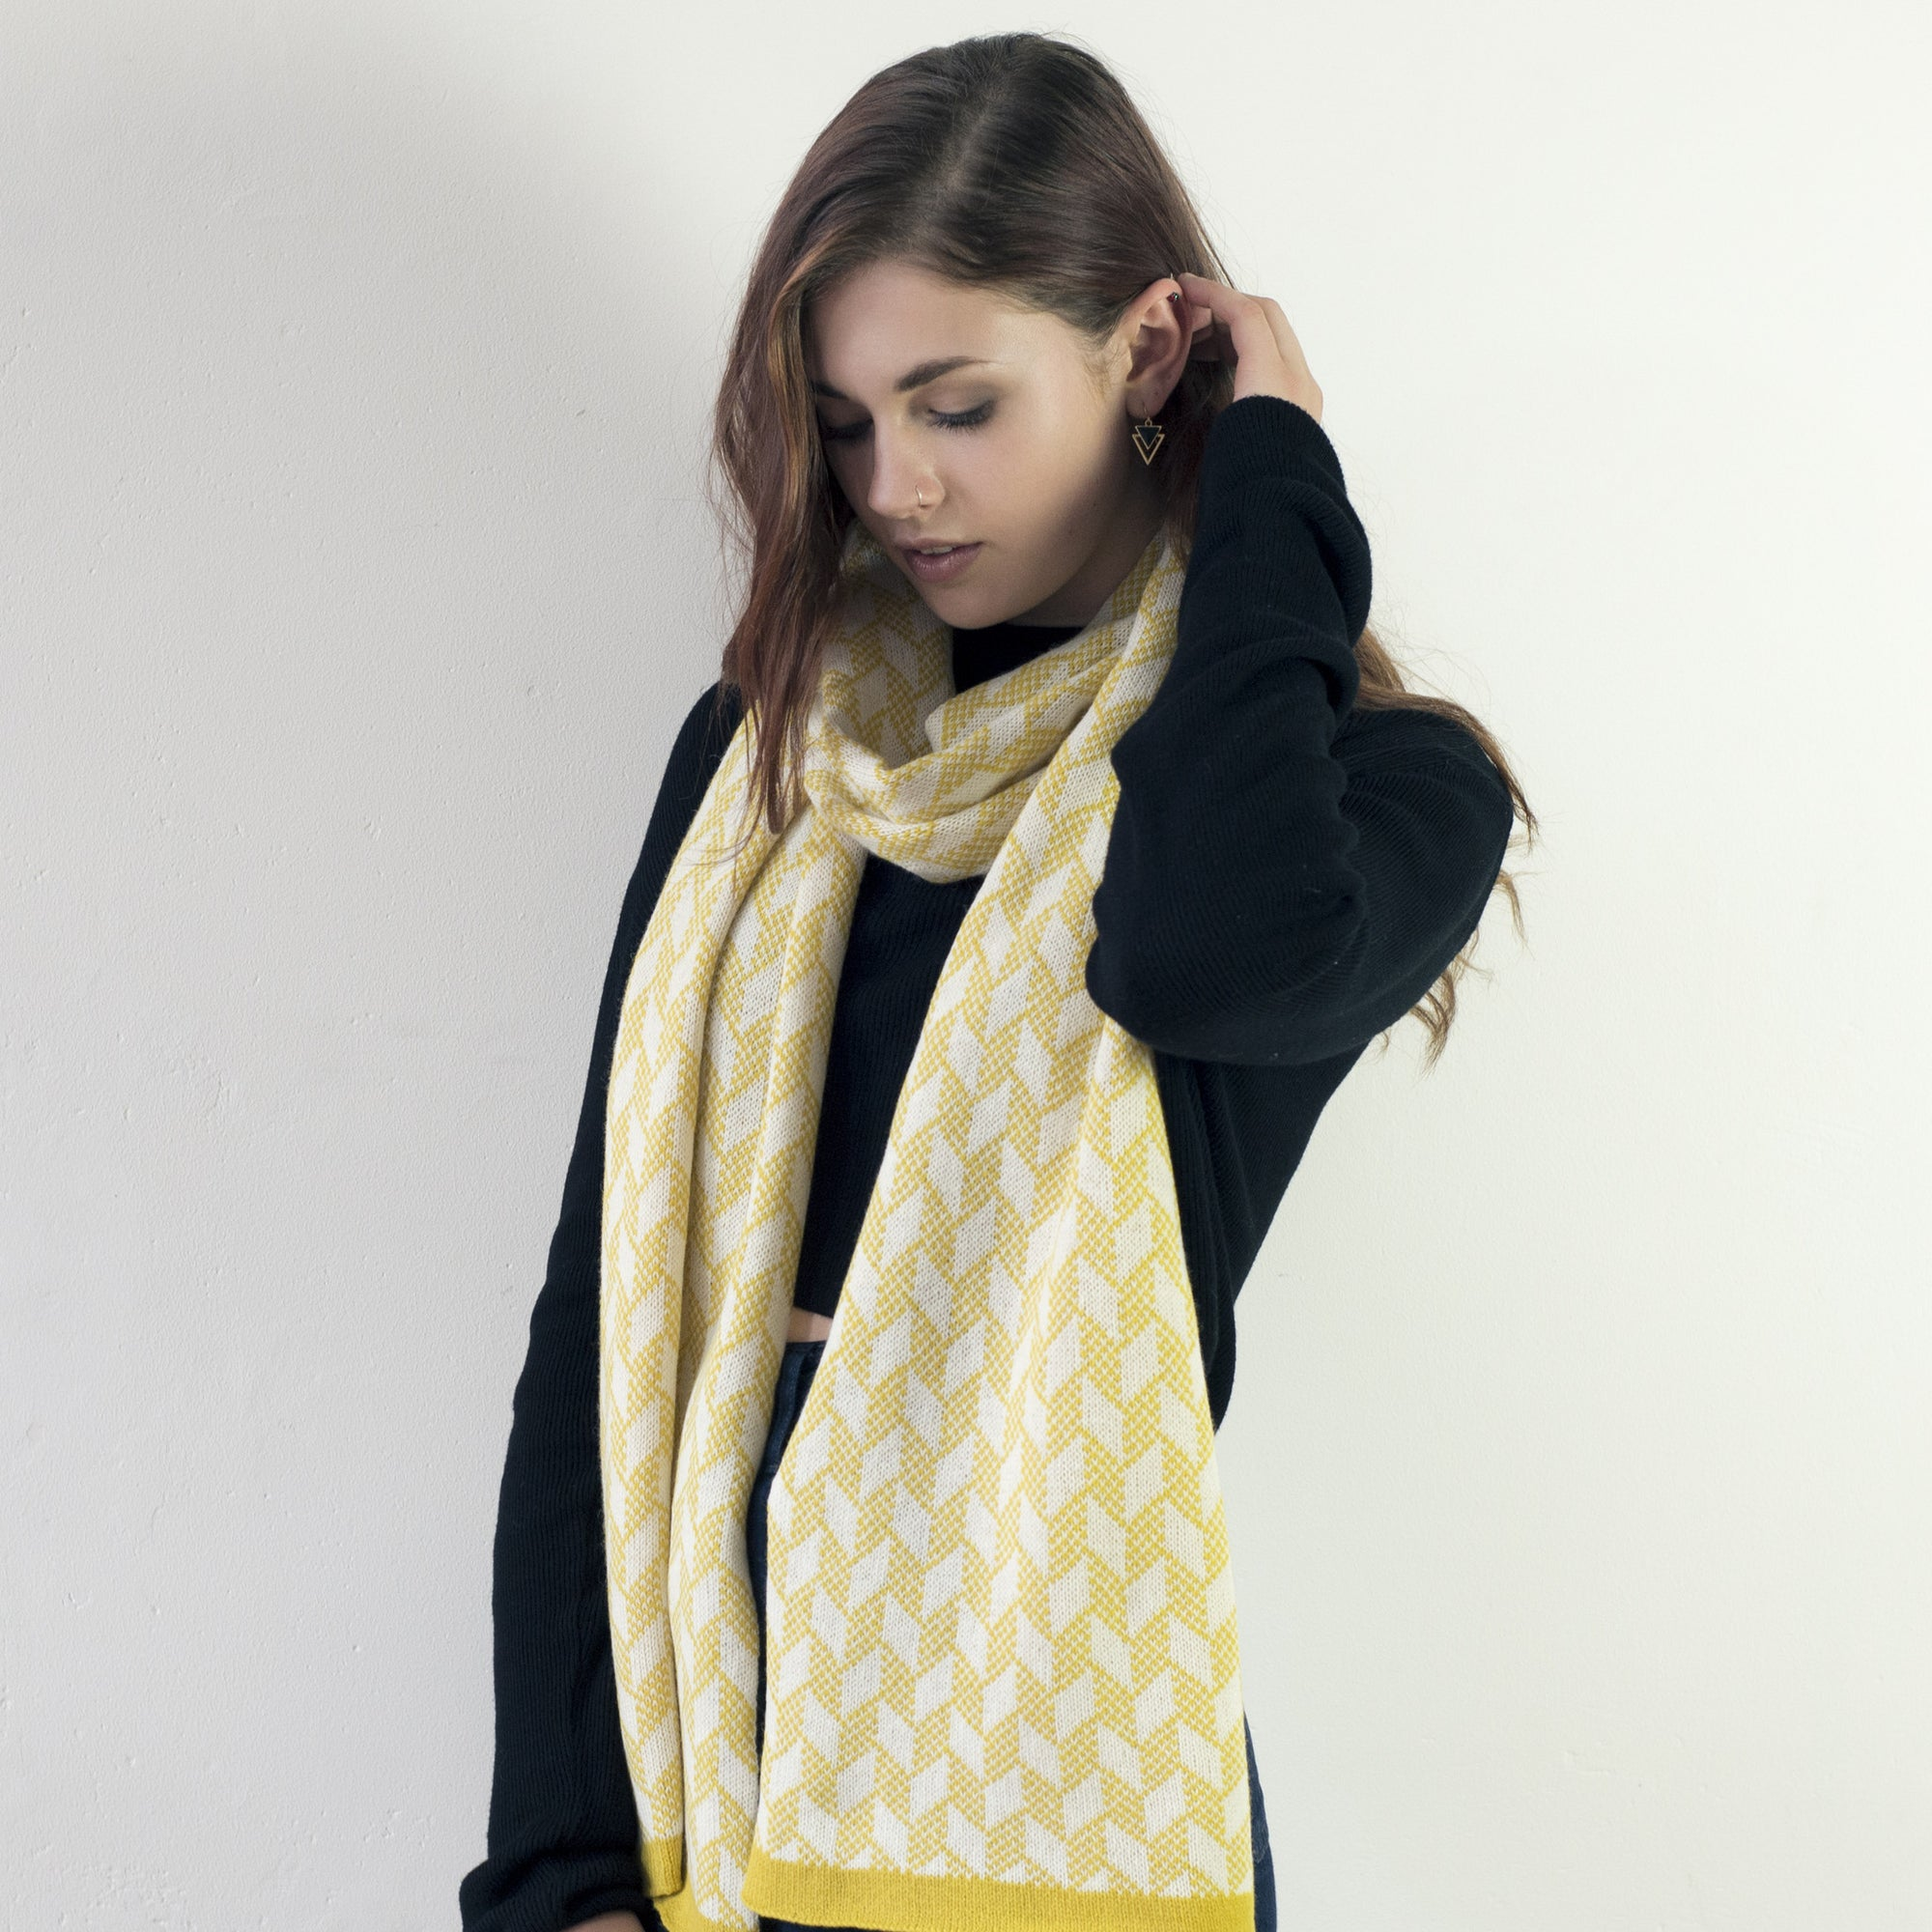 Chevron scarf - piccalilli and ecru